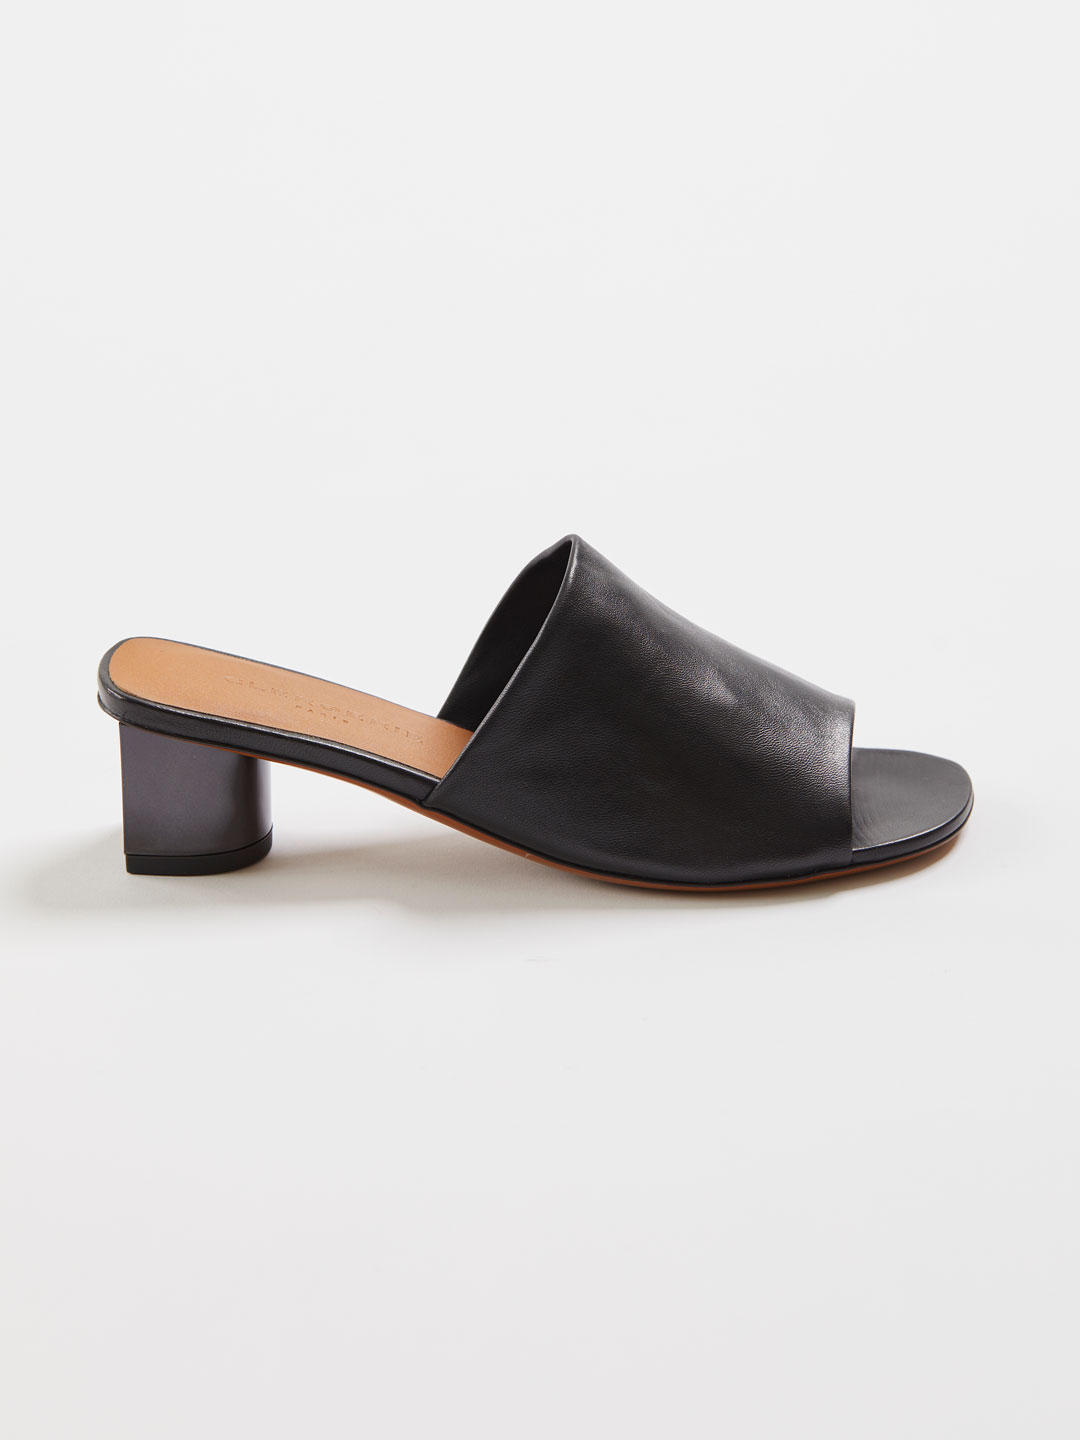 LEA5 Middle Heel Mules - Black